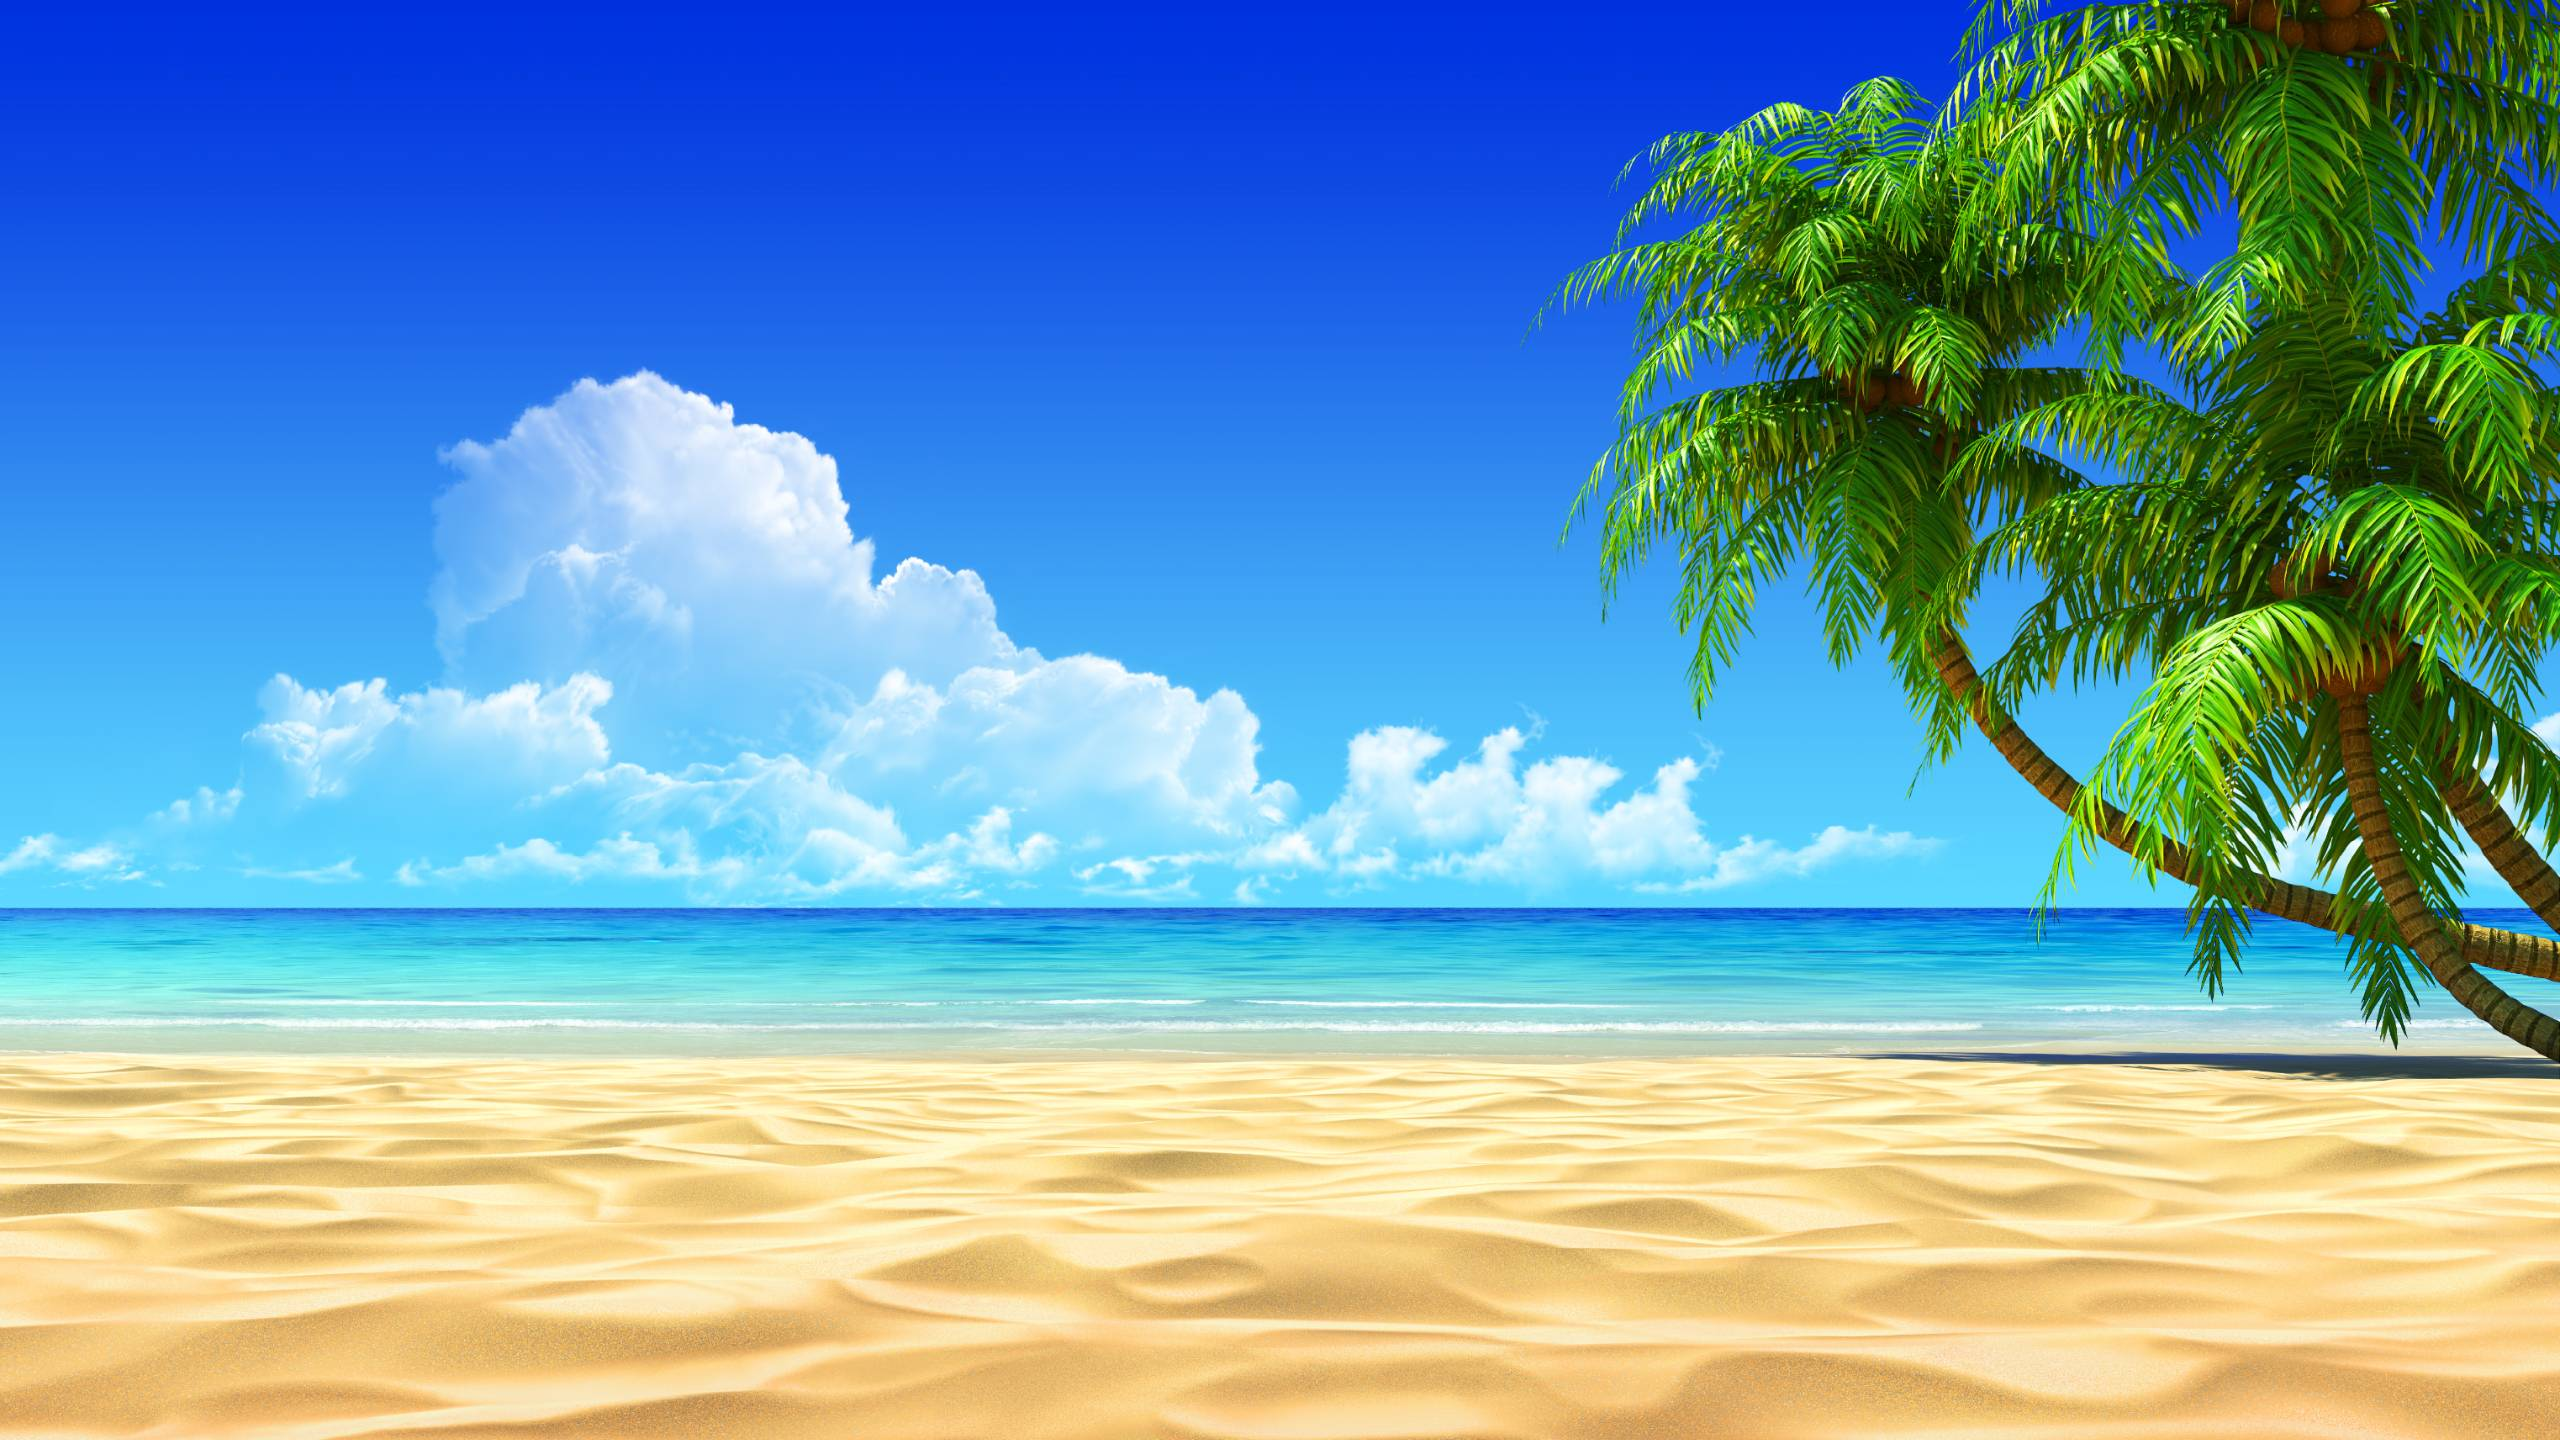 Free Tropical Beach Wallpapers Background « Long Wallpapers